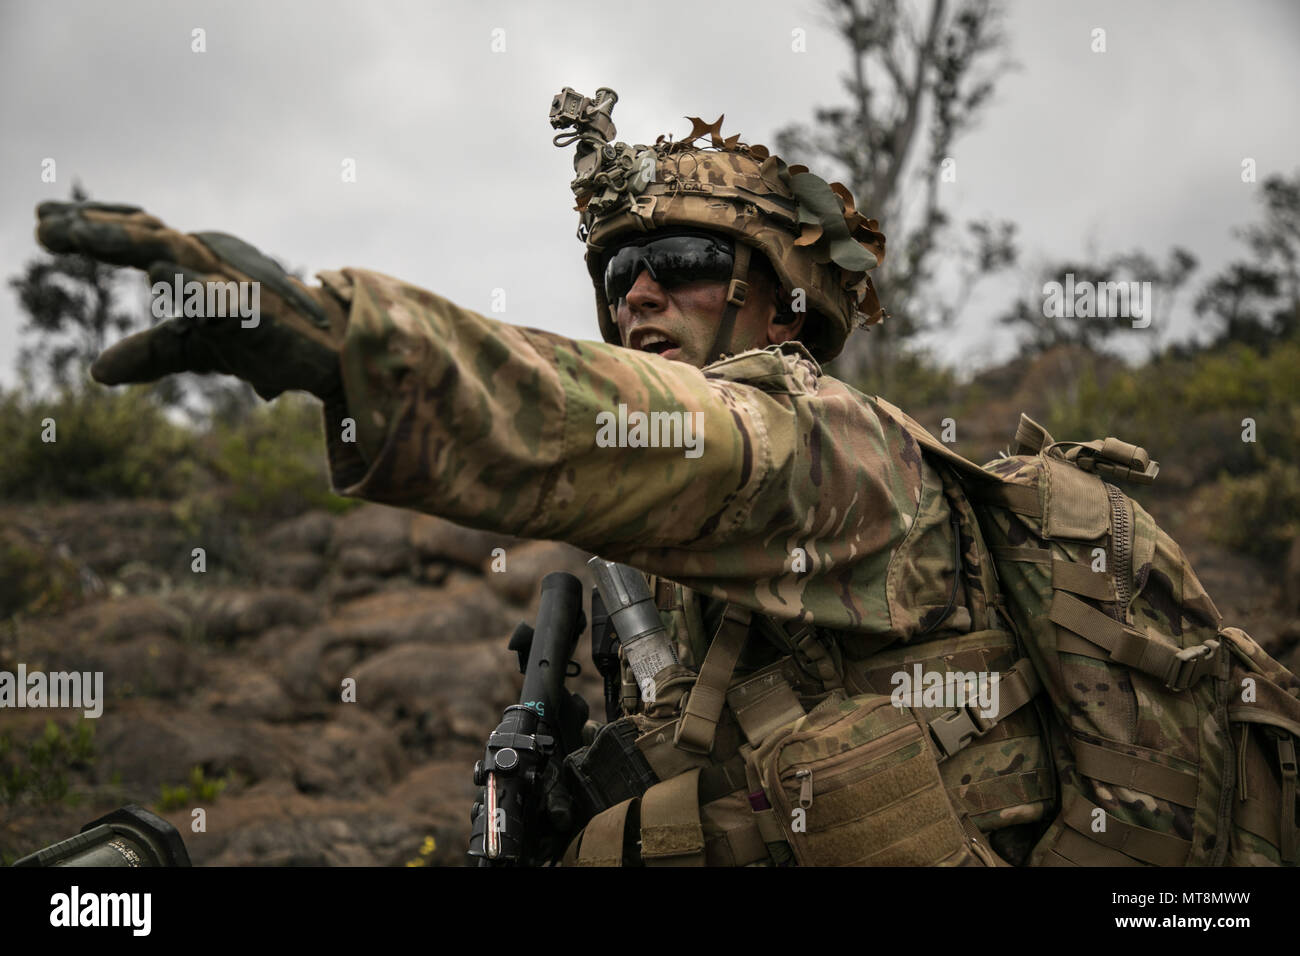 U.S. Army Trooper assigned to 2nd Squadron, 14th Calvary Regiment, 2nd Infantry Brigade Combat Team, 25th Infantry Division signals a movement direction during a Combined Arms Live Fire Exercise (CALFEX) at Pohakuloa Training Area, Hawaii, May 15, 2018. The CALFEX utilizes all the enablers available to the unit in order to increase interoperability, concentrate combat power and mass effects on the objective. (U.S. Army photo by 1st Lt. Ryan DeBooy) - Stock Image